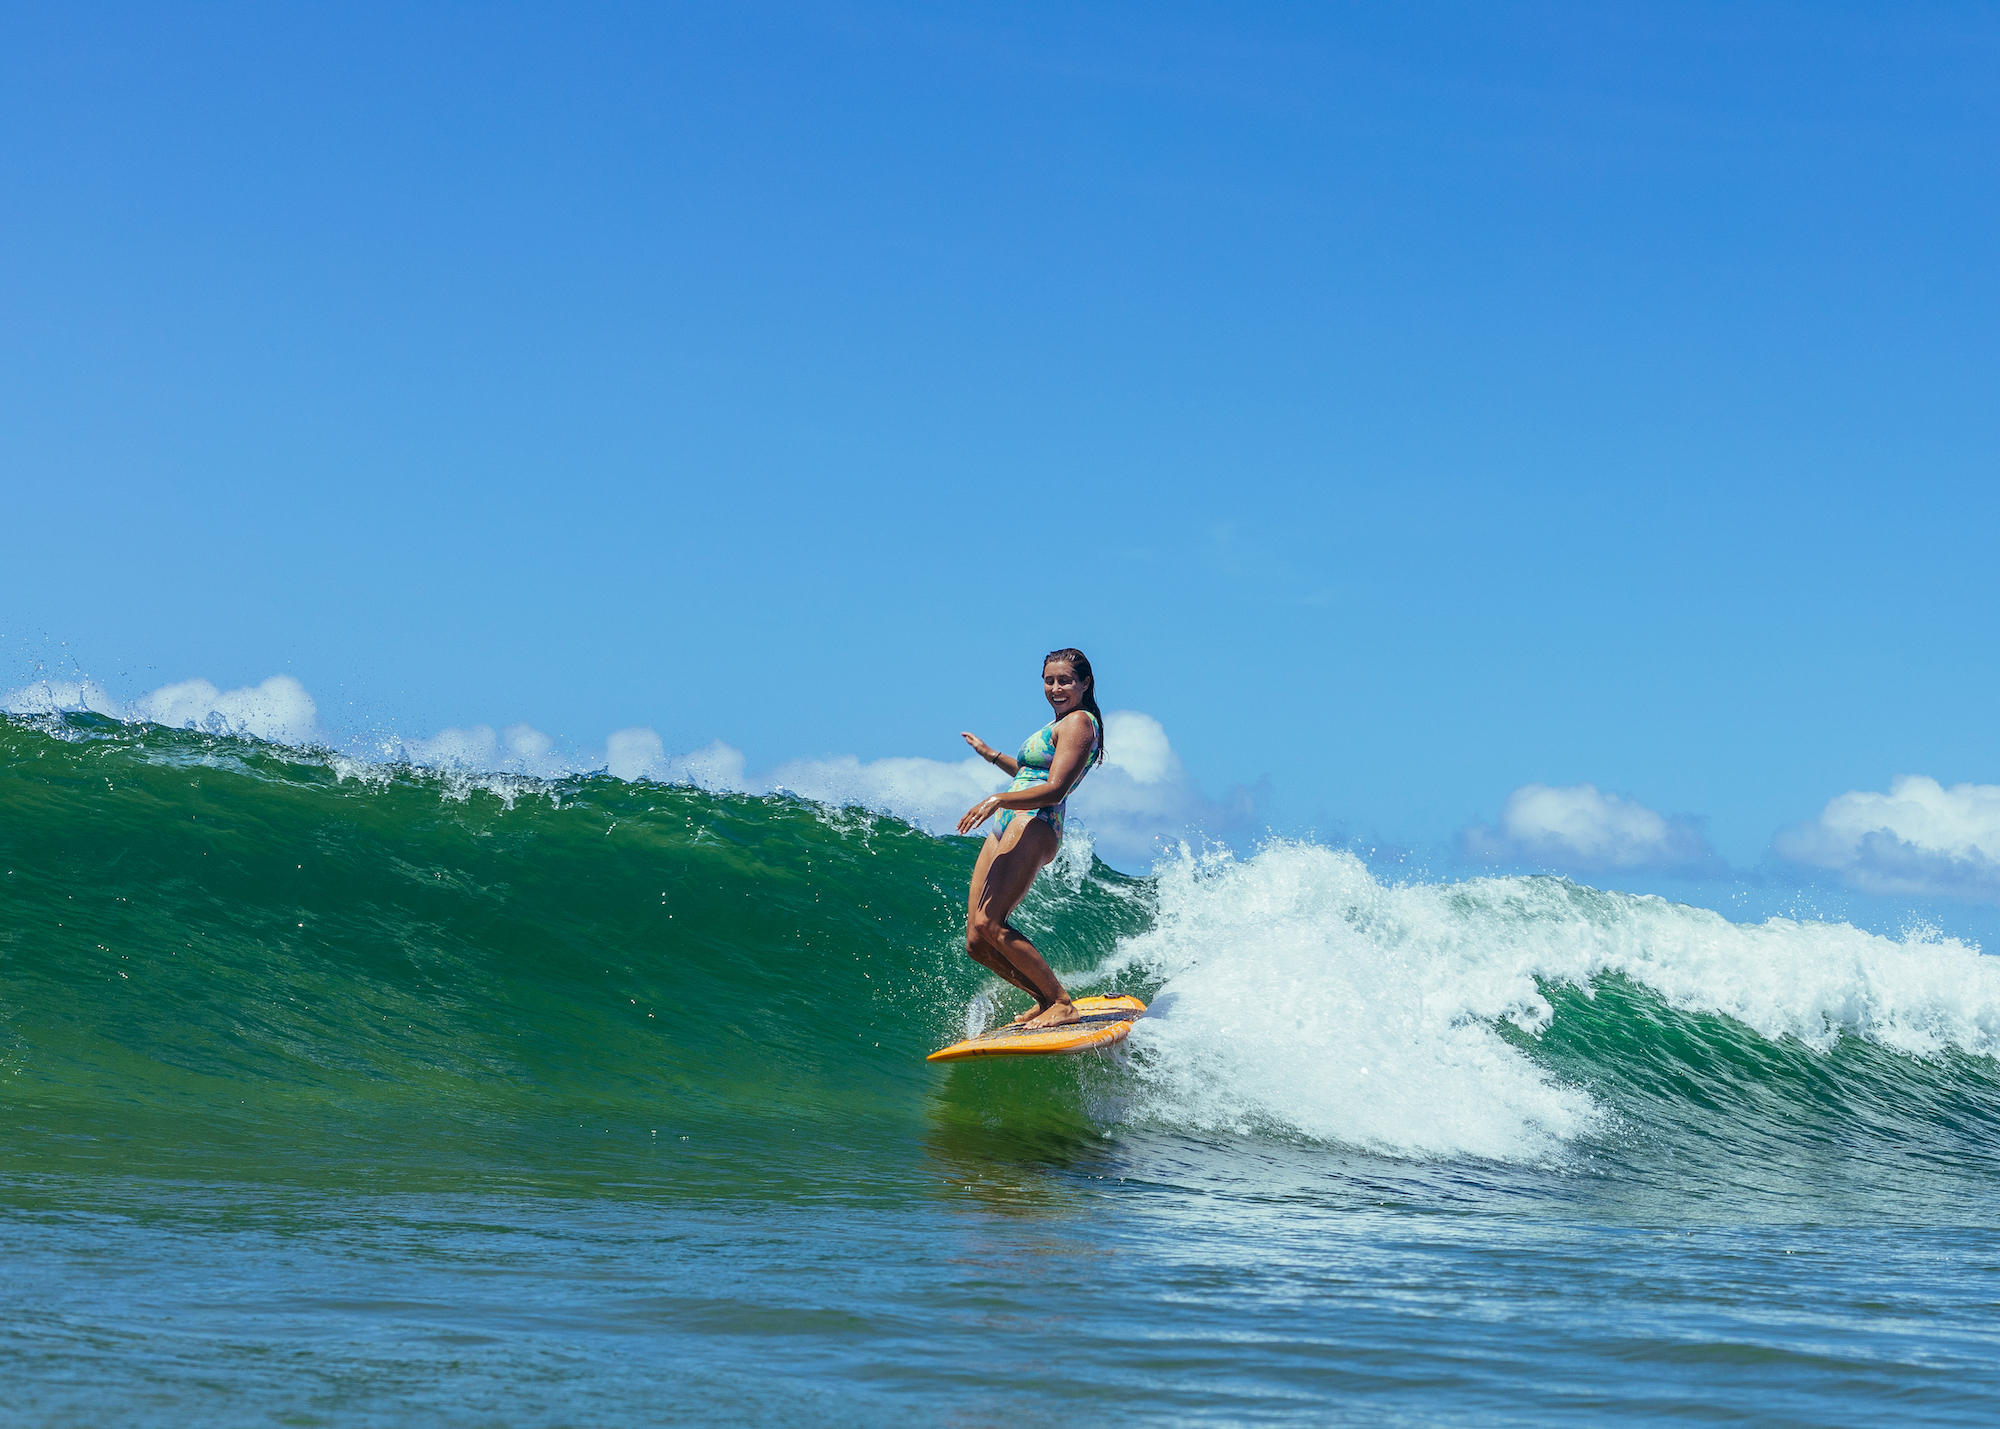 Lauren Hill Chronicles the Rise of Female Surfing in New Book